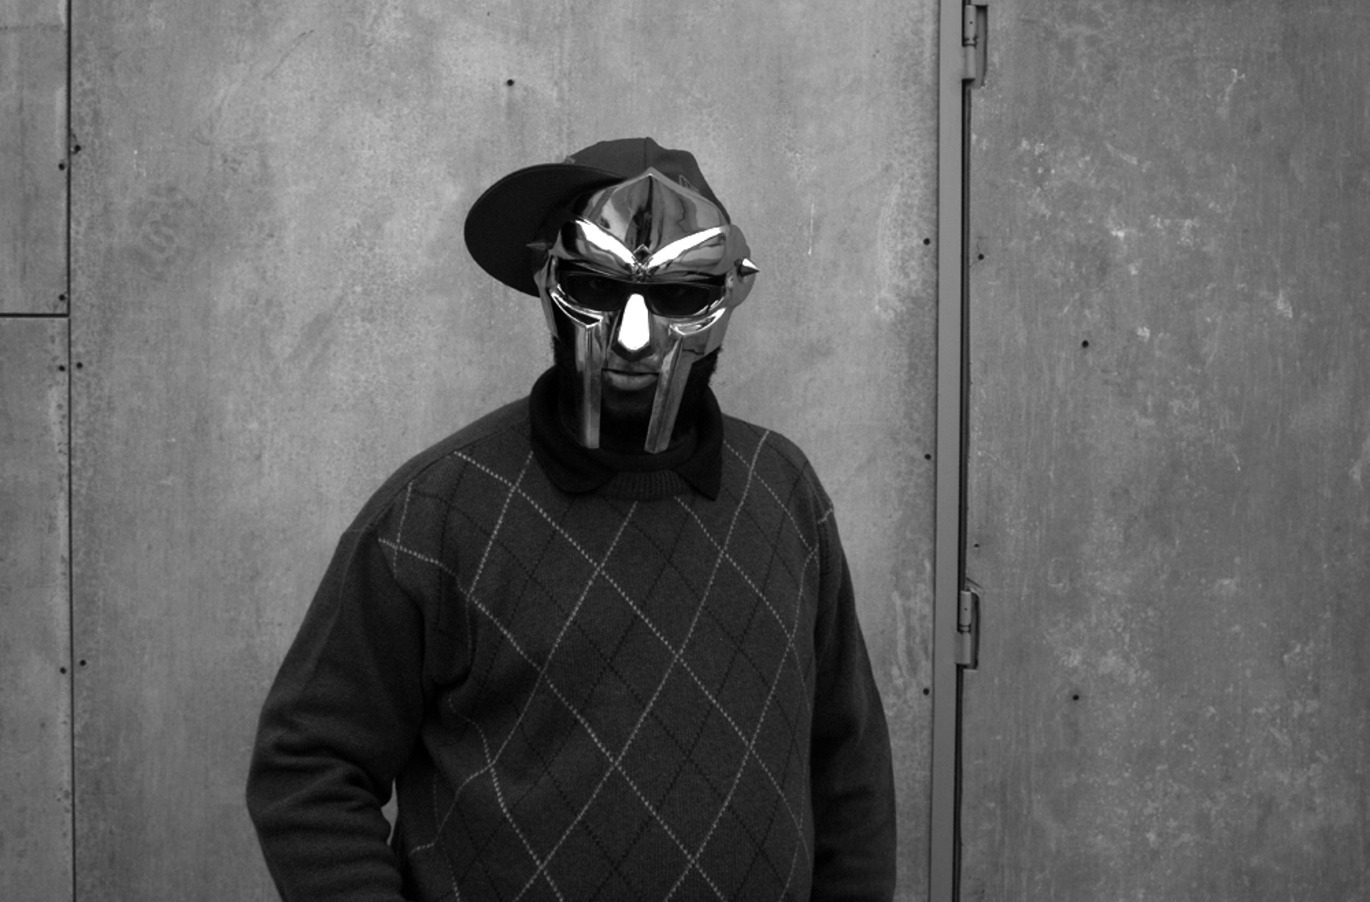 HipHop-TheGoldenEra: MF DOOM - It Ain't Nuttin' - Remix by Suhnraw